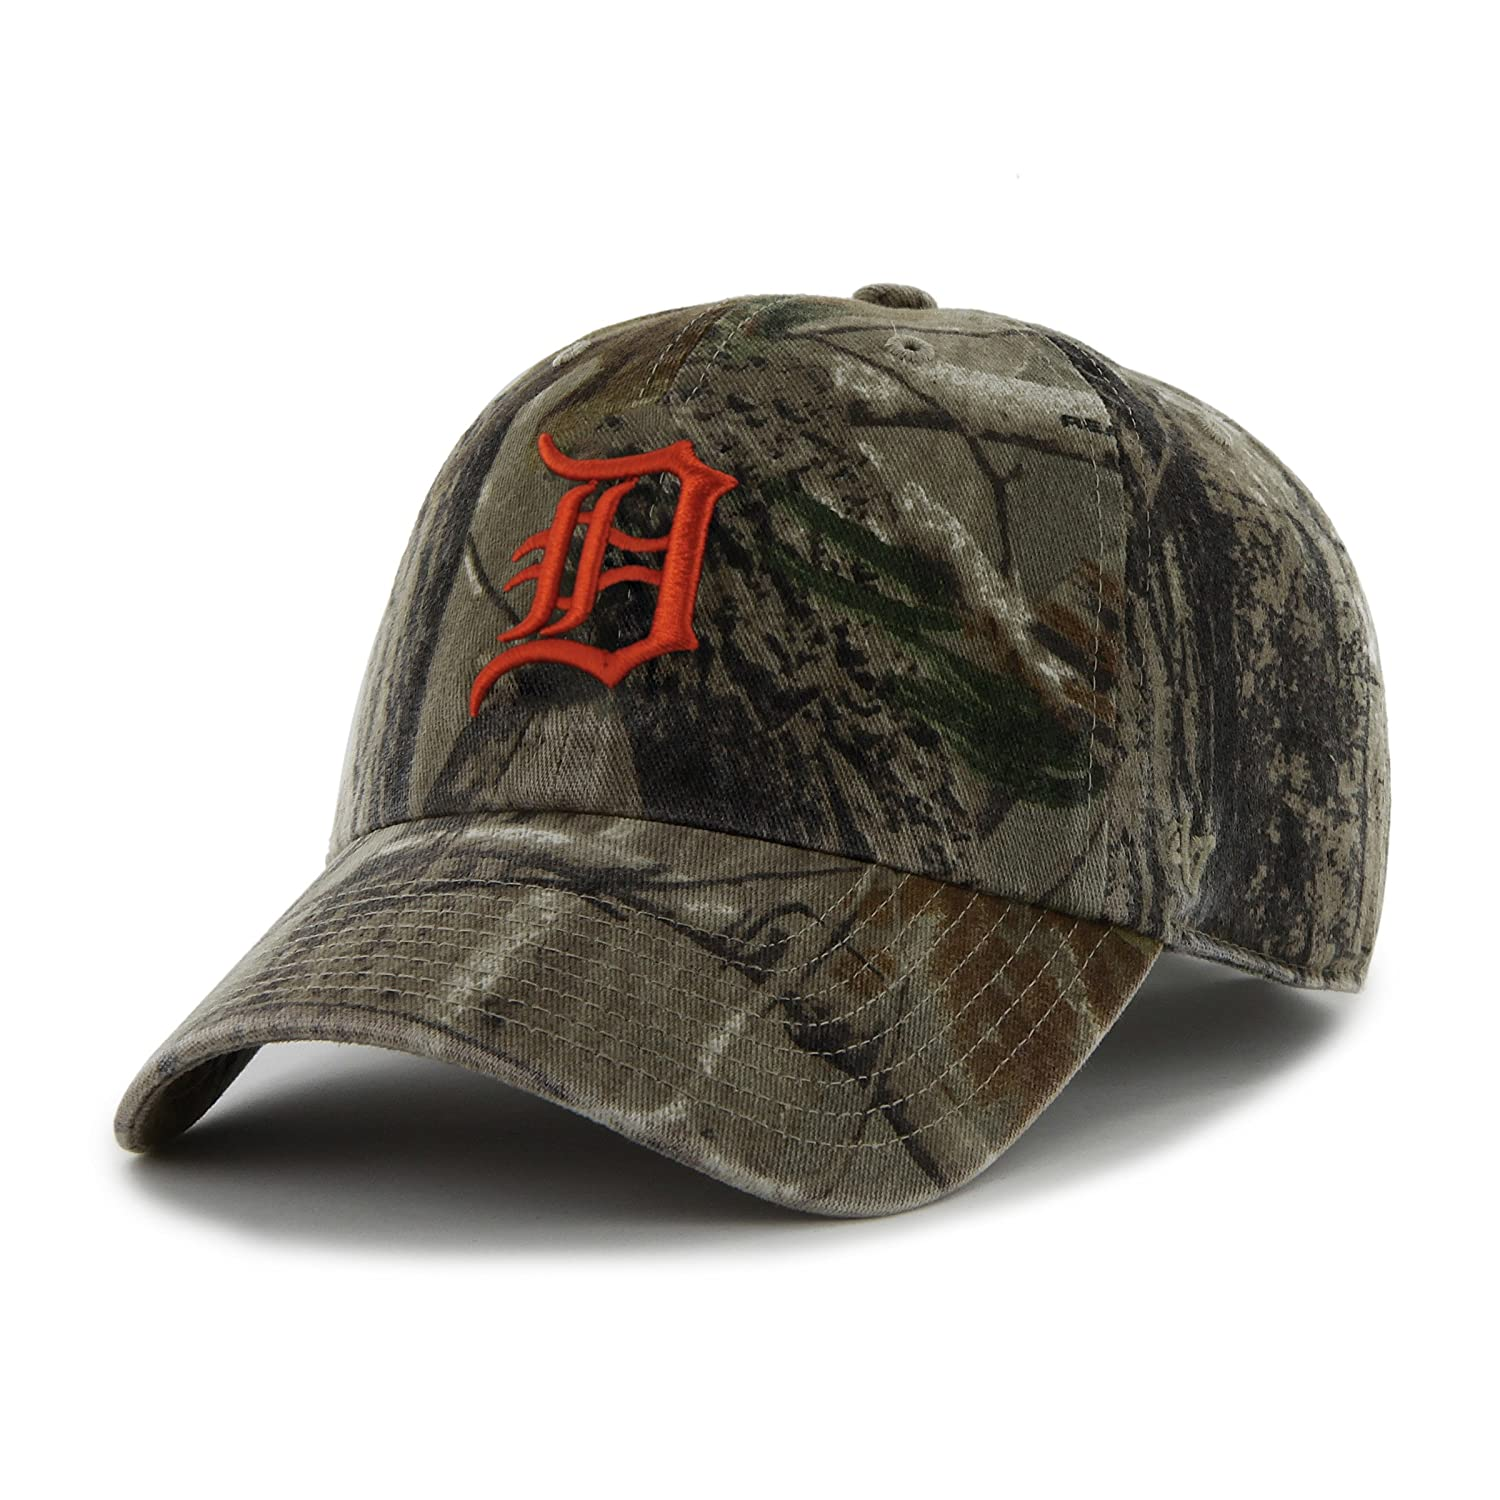 fc9b6286d1c5a '47 MLB Detroit Tigers Clean Up Adjustable Hat, One Size, Realtree  Camouflage